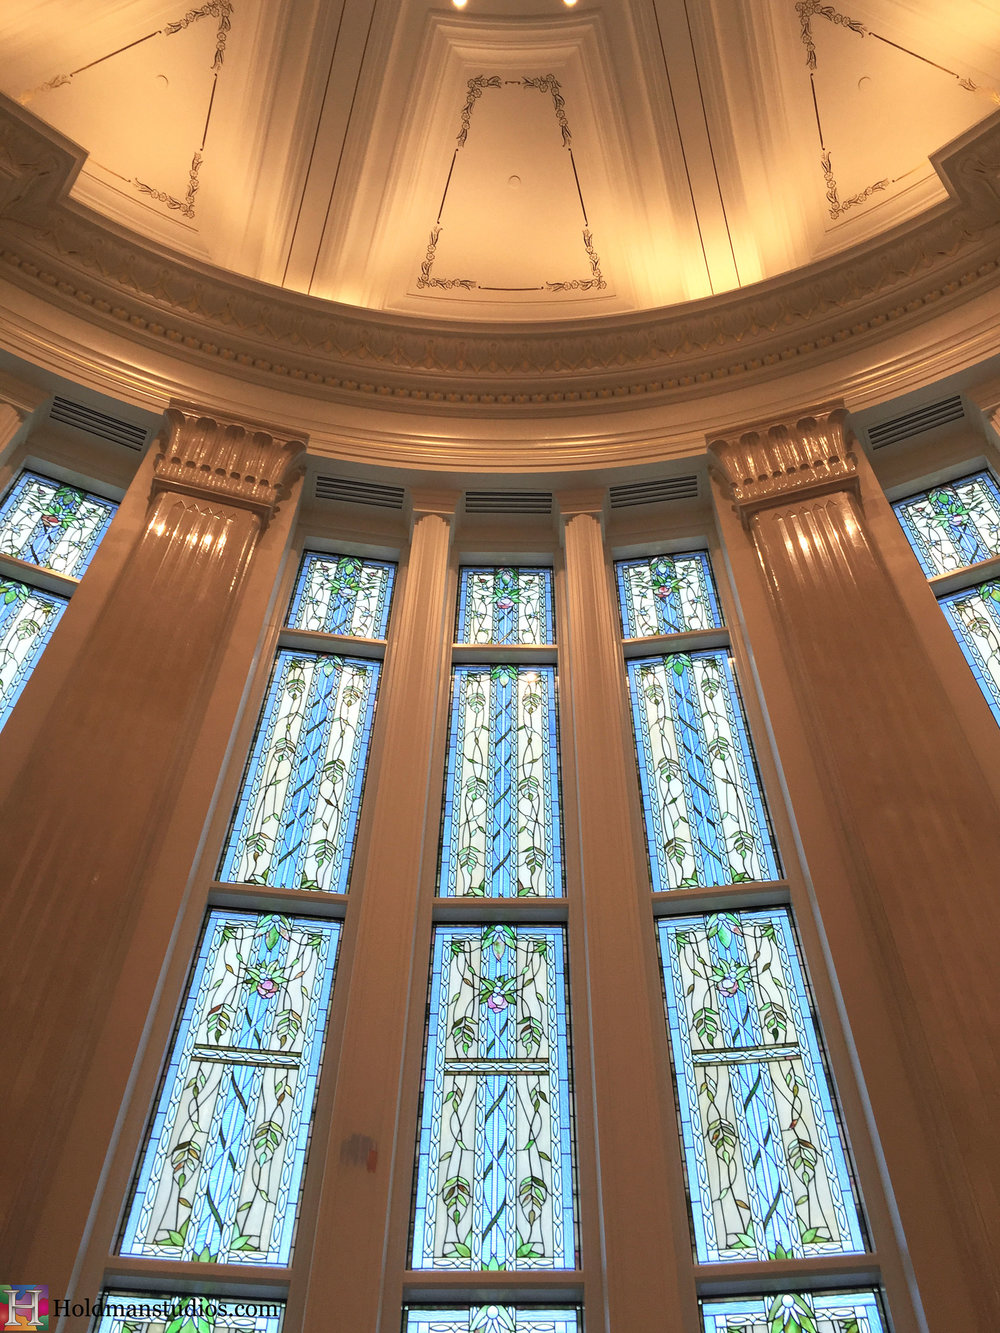 Holdman_Studios_Stained_Art_Glass_Payson_Utah_Temple_Apple_Blossoms_Leaves_DNA_Spiral_Windows.jpg